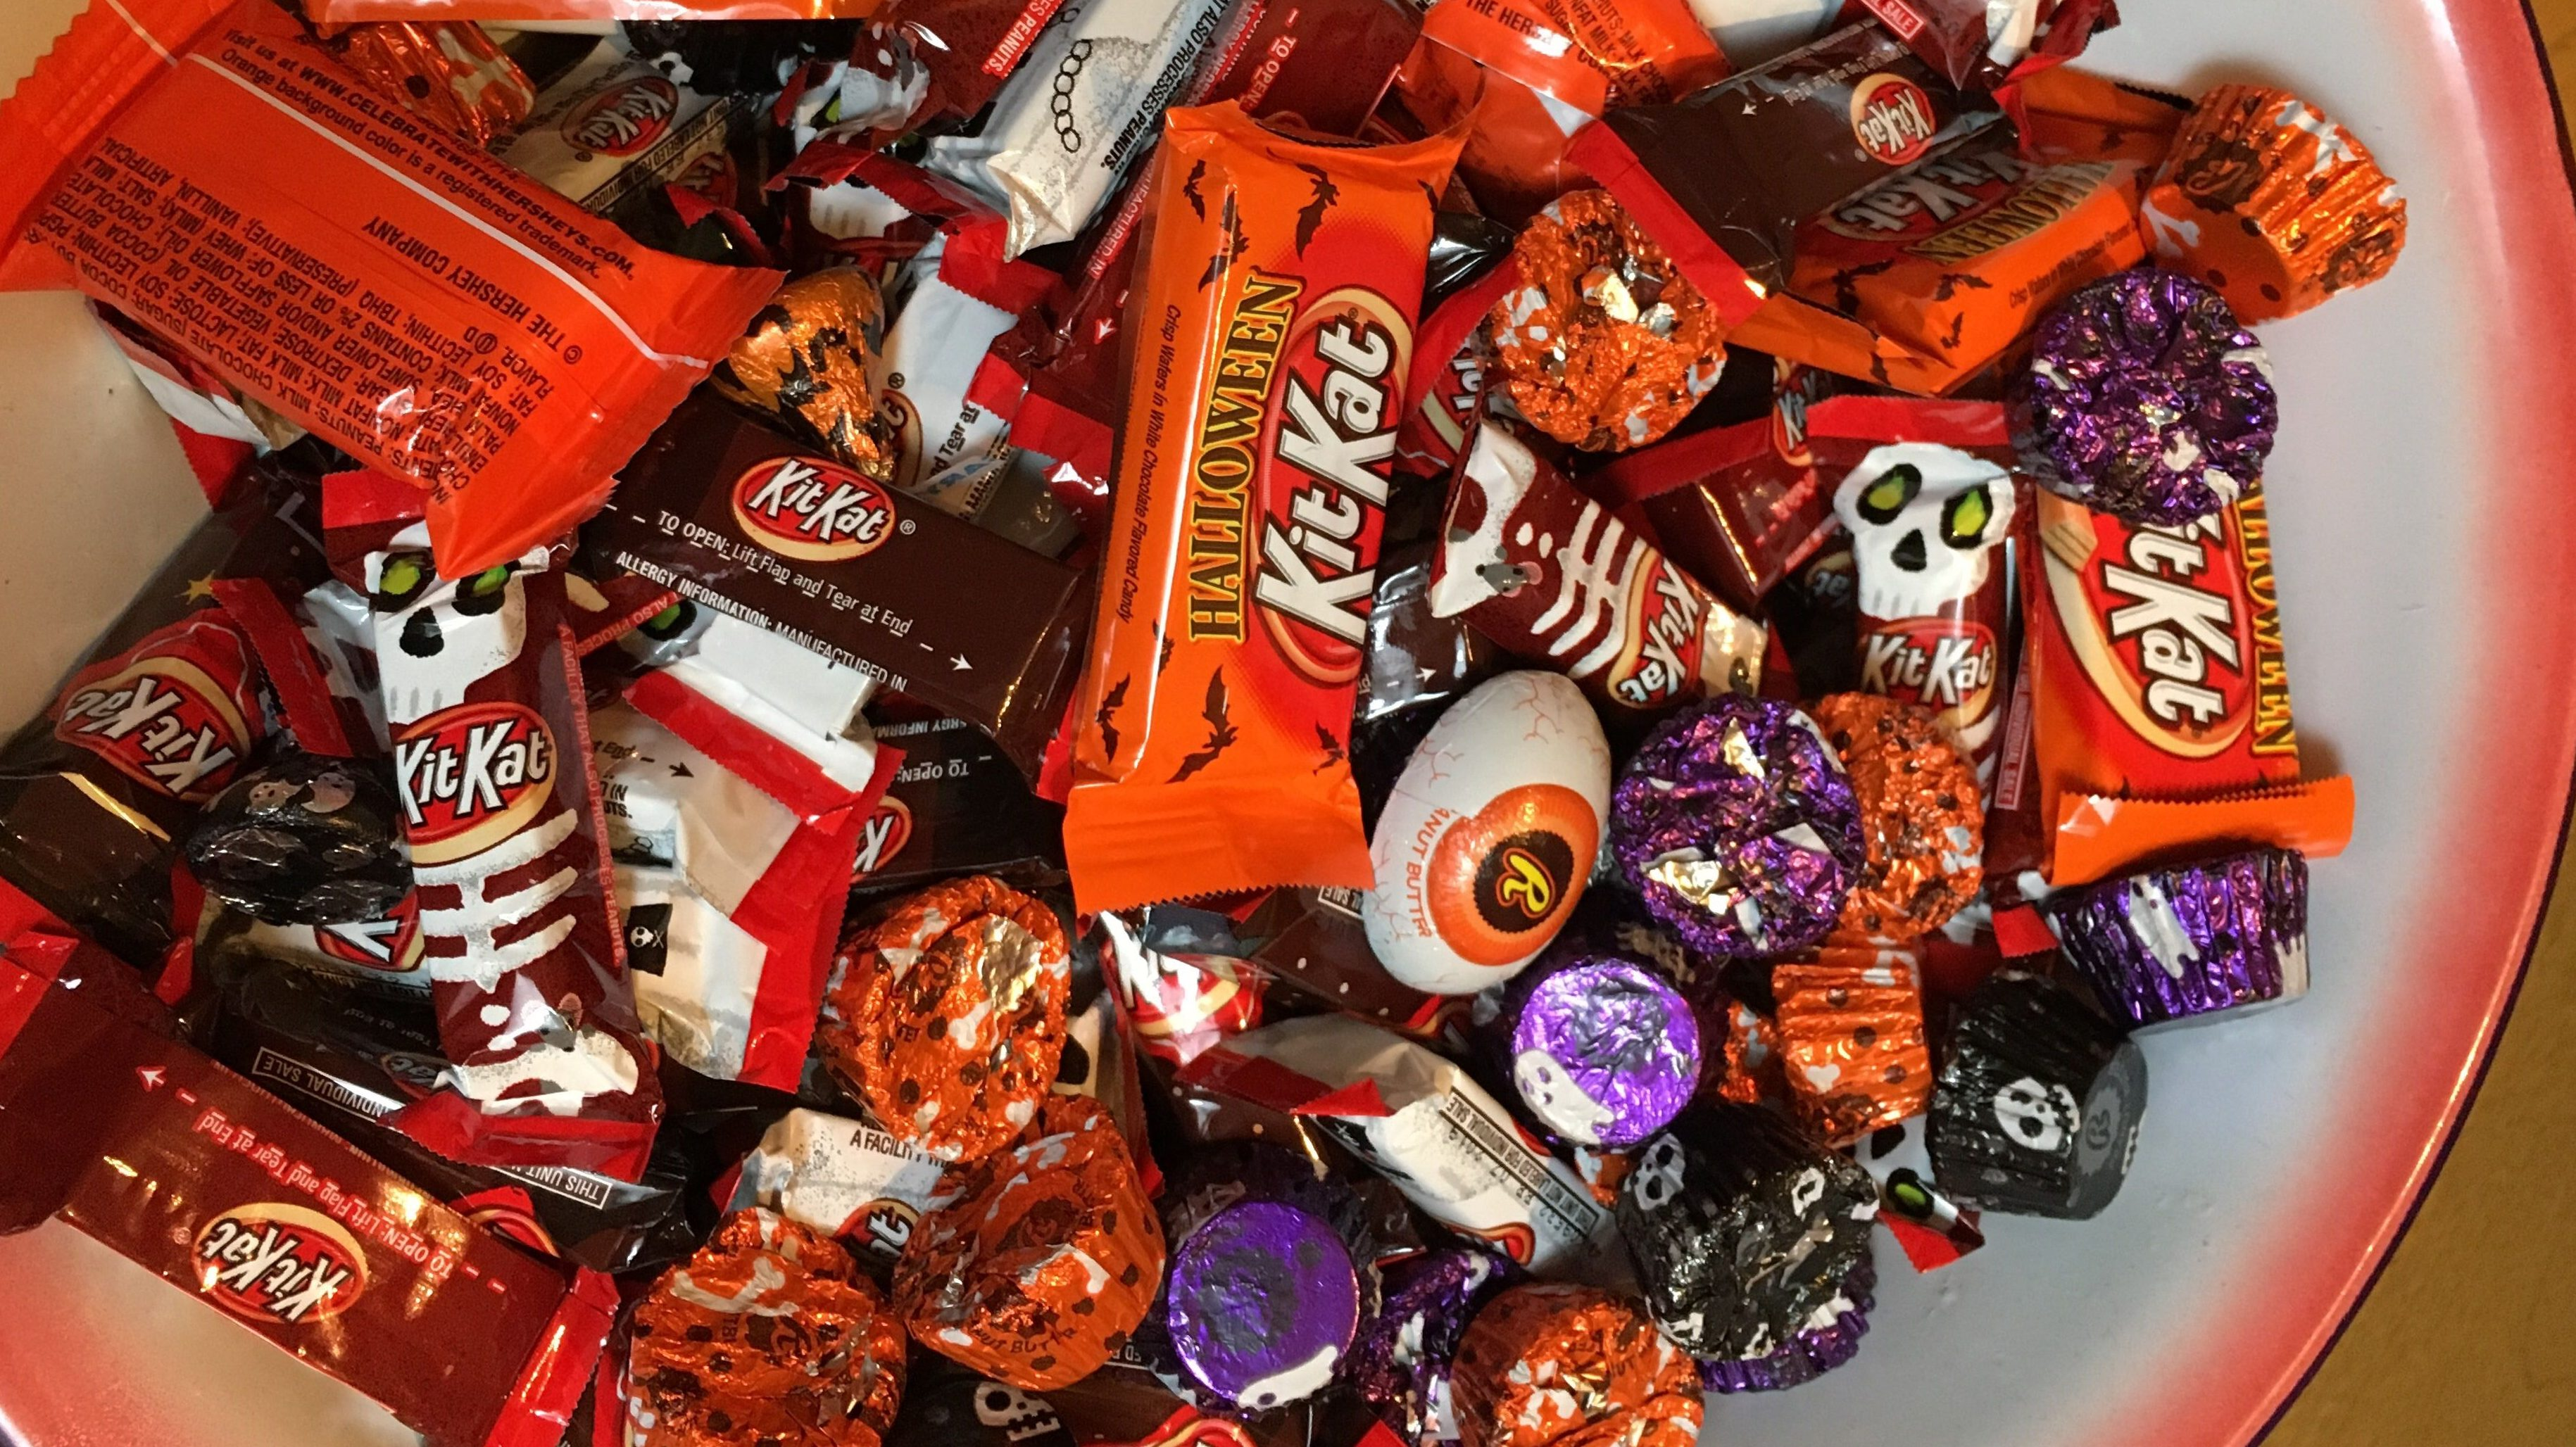 Here is permission to throw away your leftover Halloween